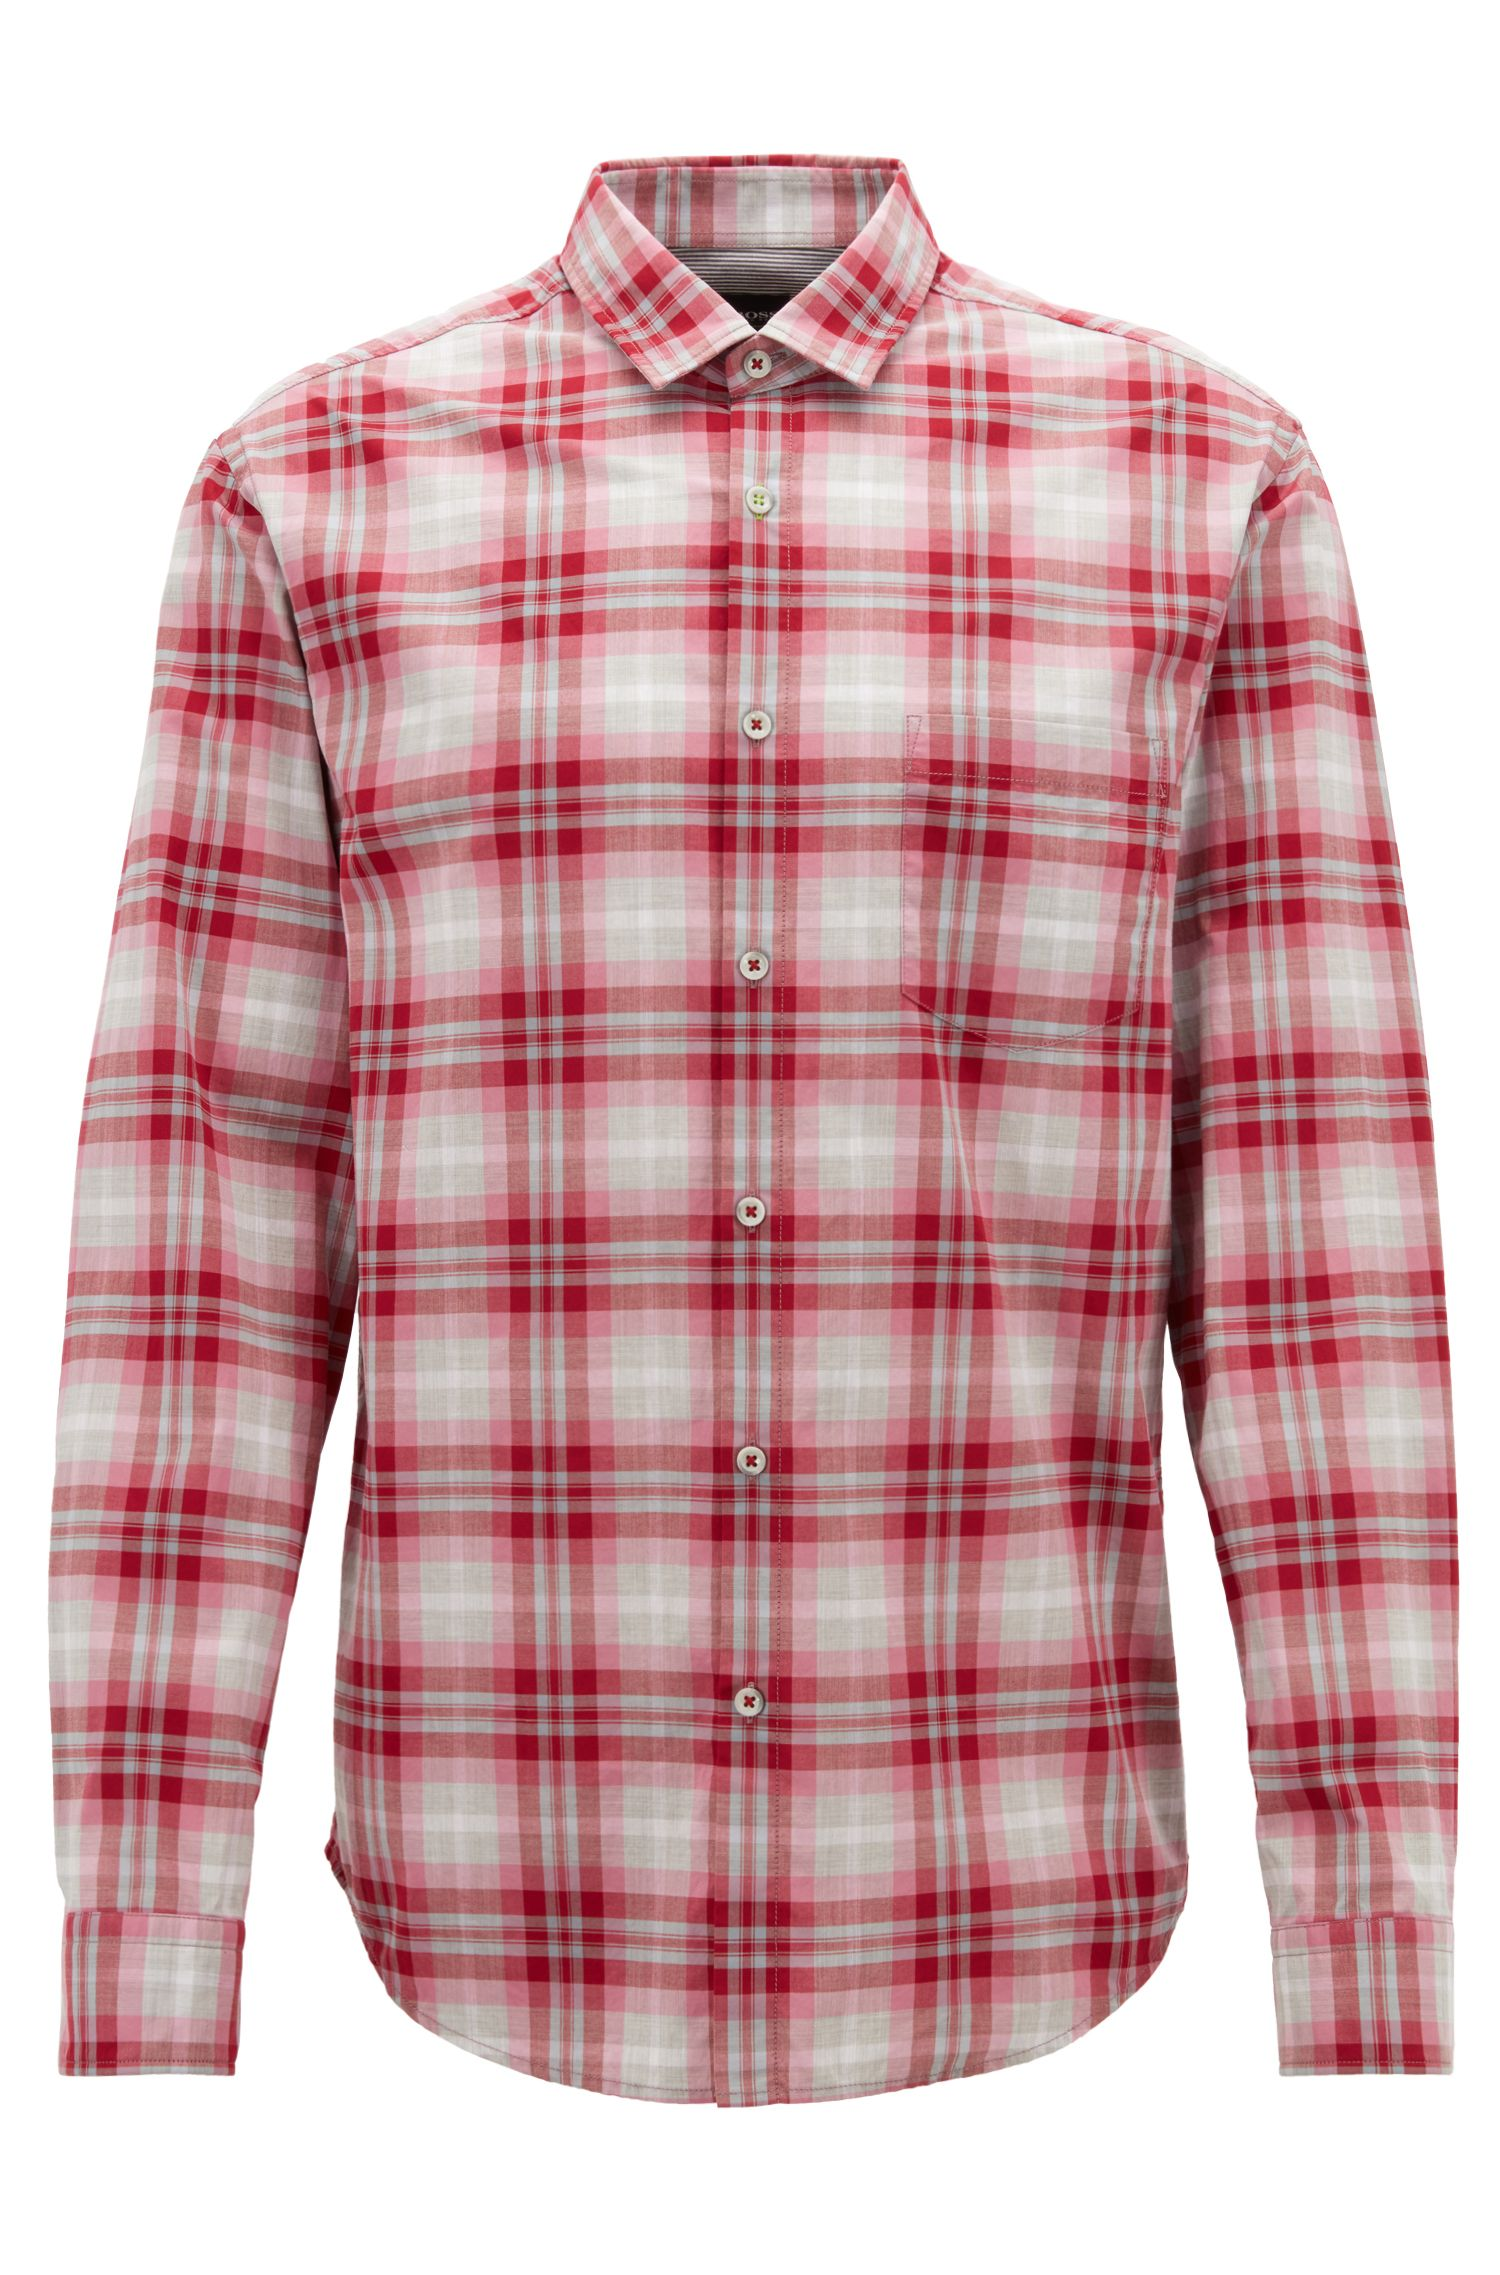 Checked shirt in heathered cotton poplin with moisture management